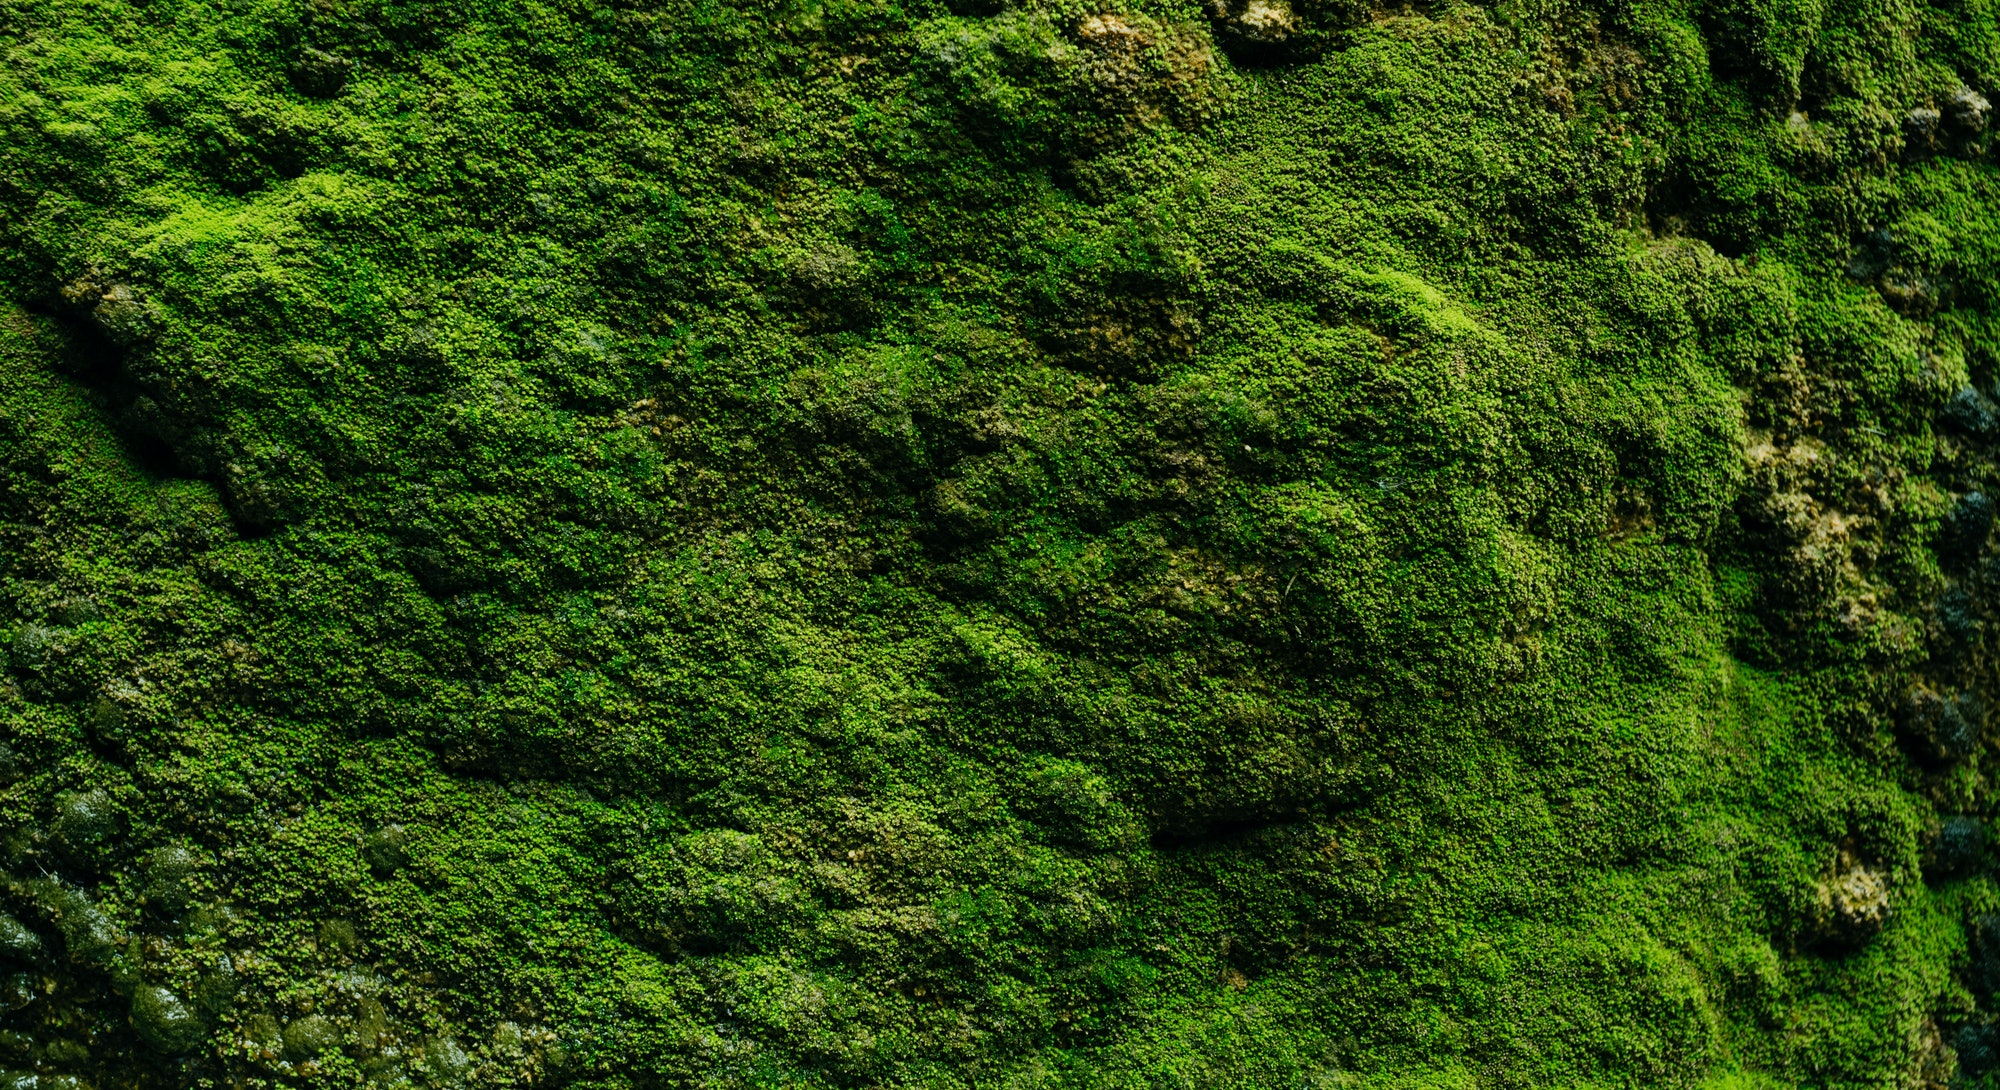 Beautiful green moss close up, Moss texture, Moss abstract background.